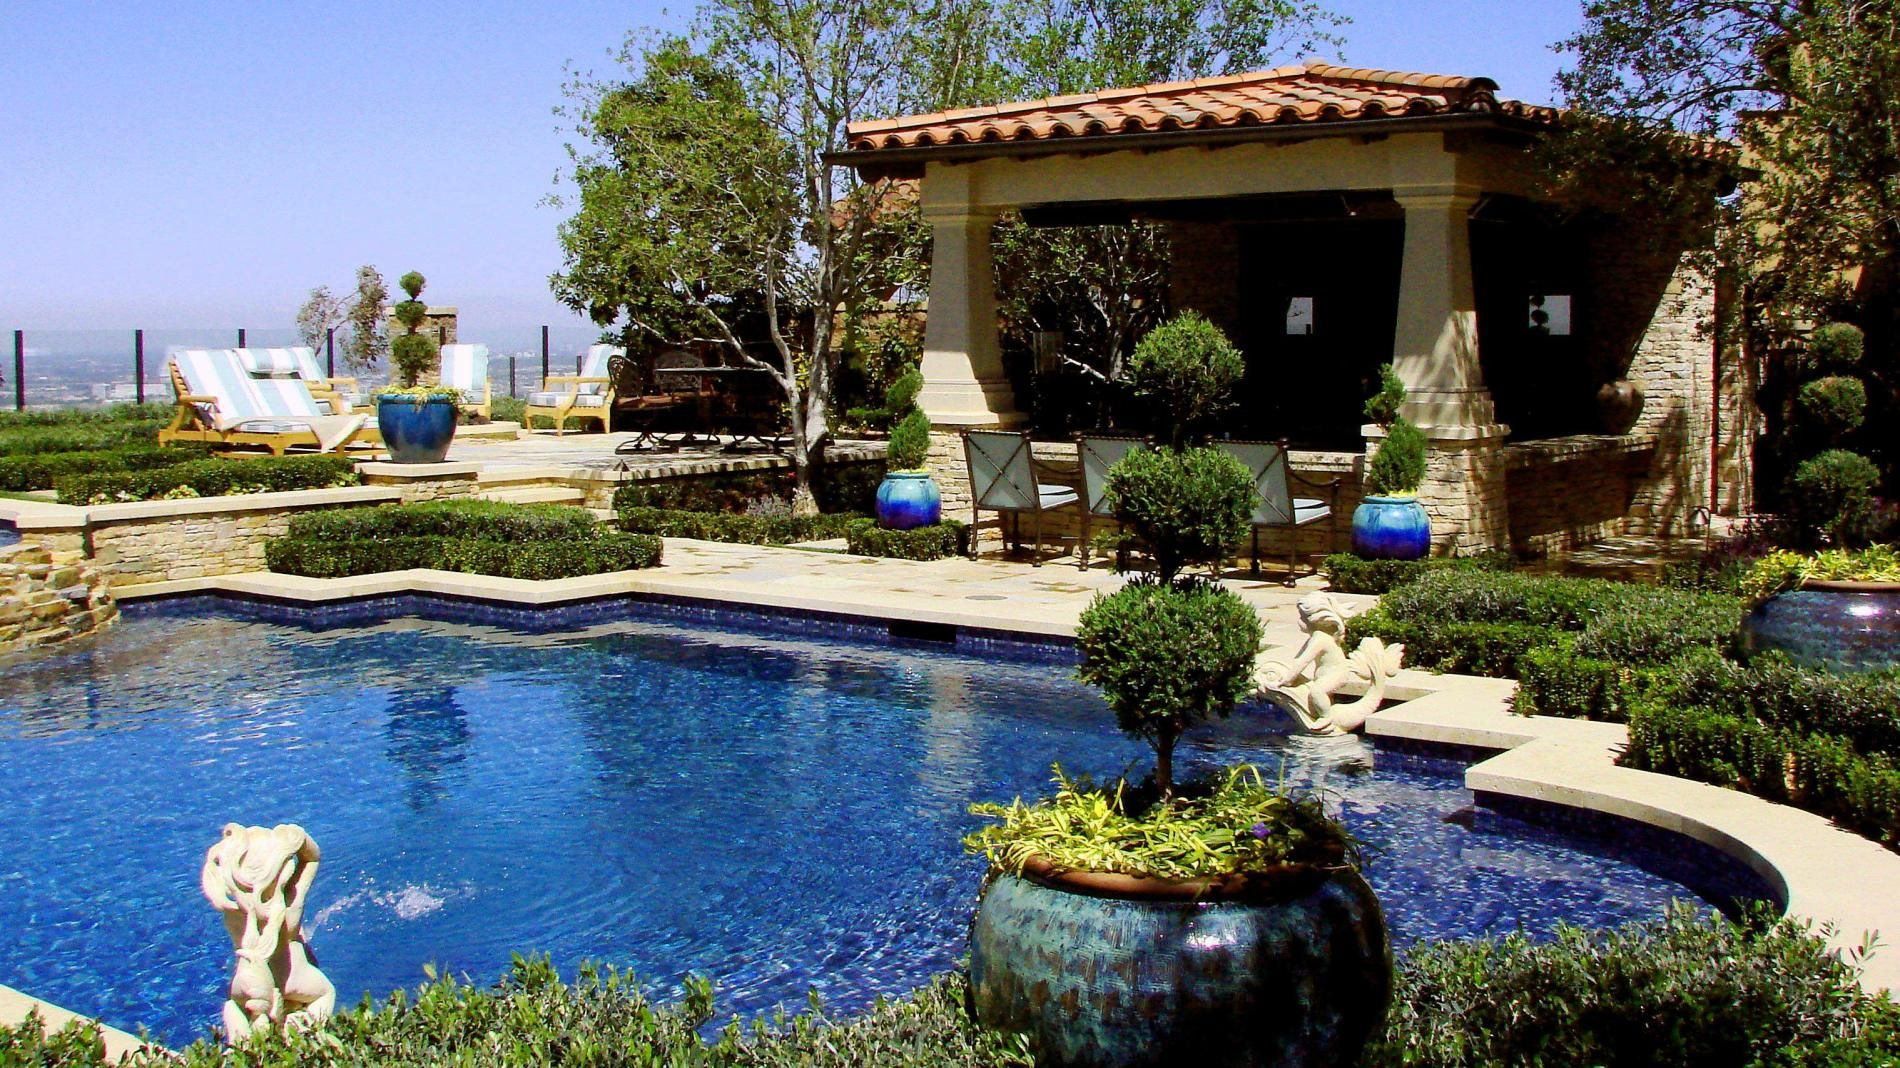 Pool Landscape Designs Pool Design Pool Ideas